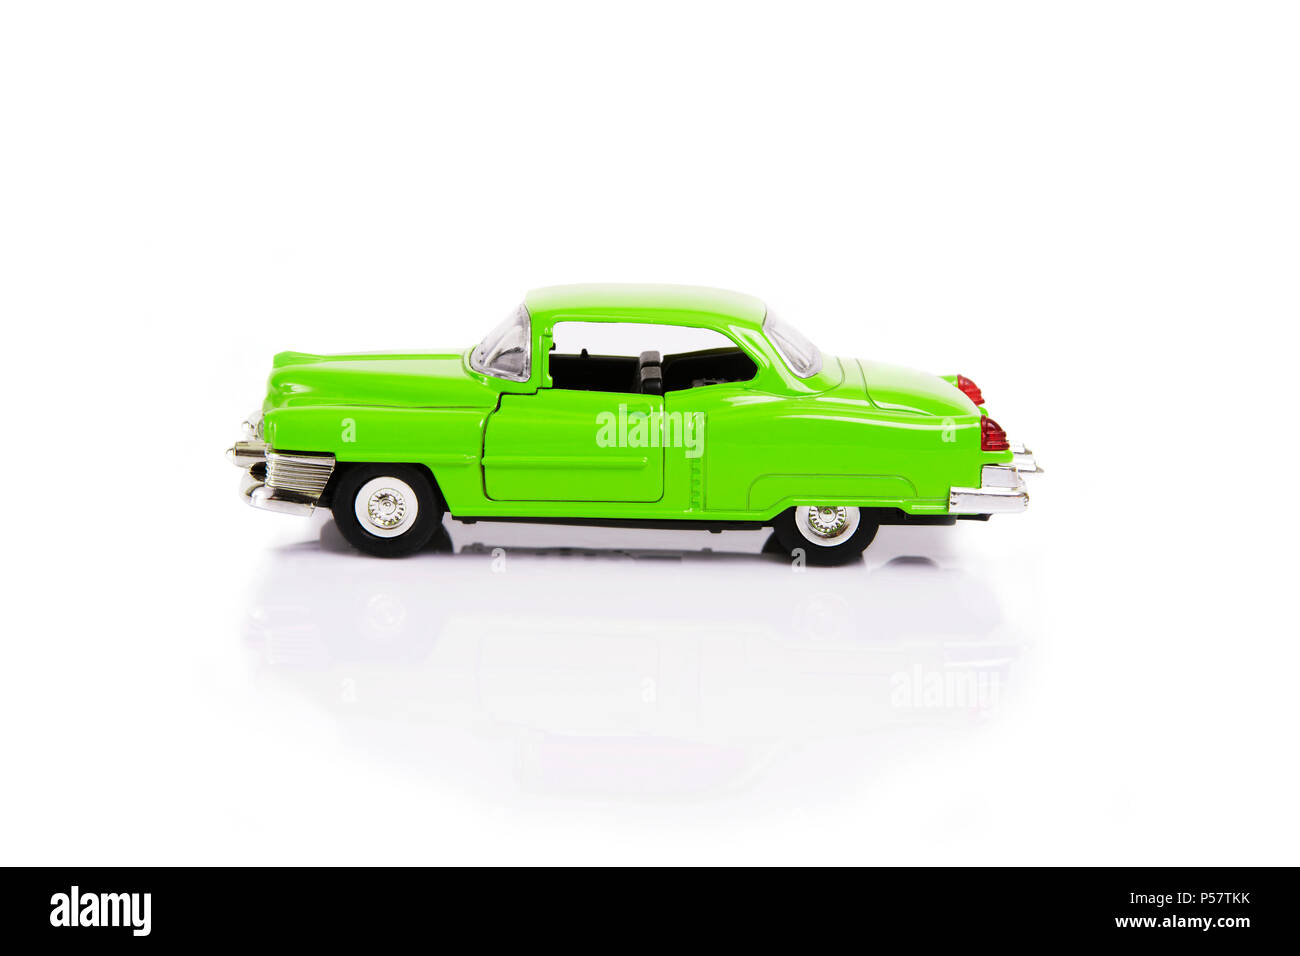 Side view of green model toy car in retro style on white background. - Stock Image